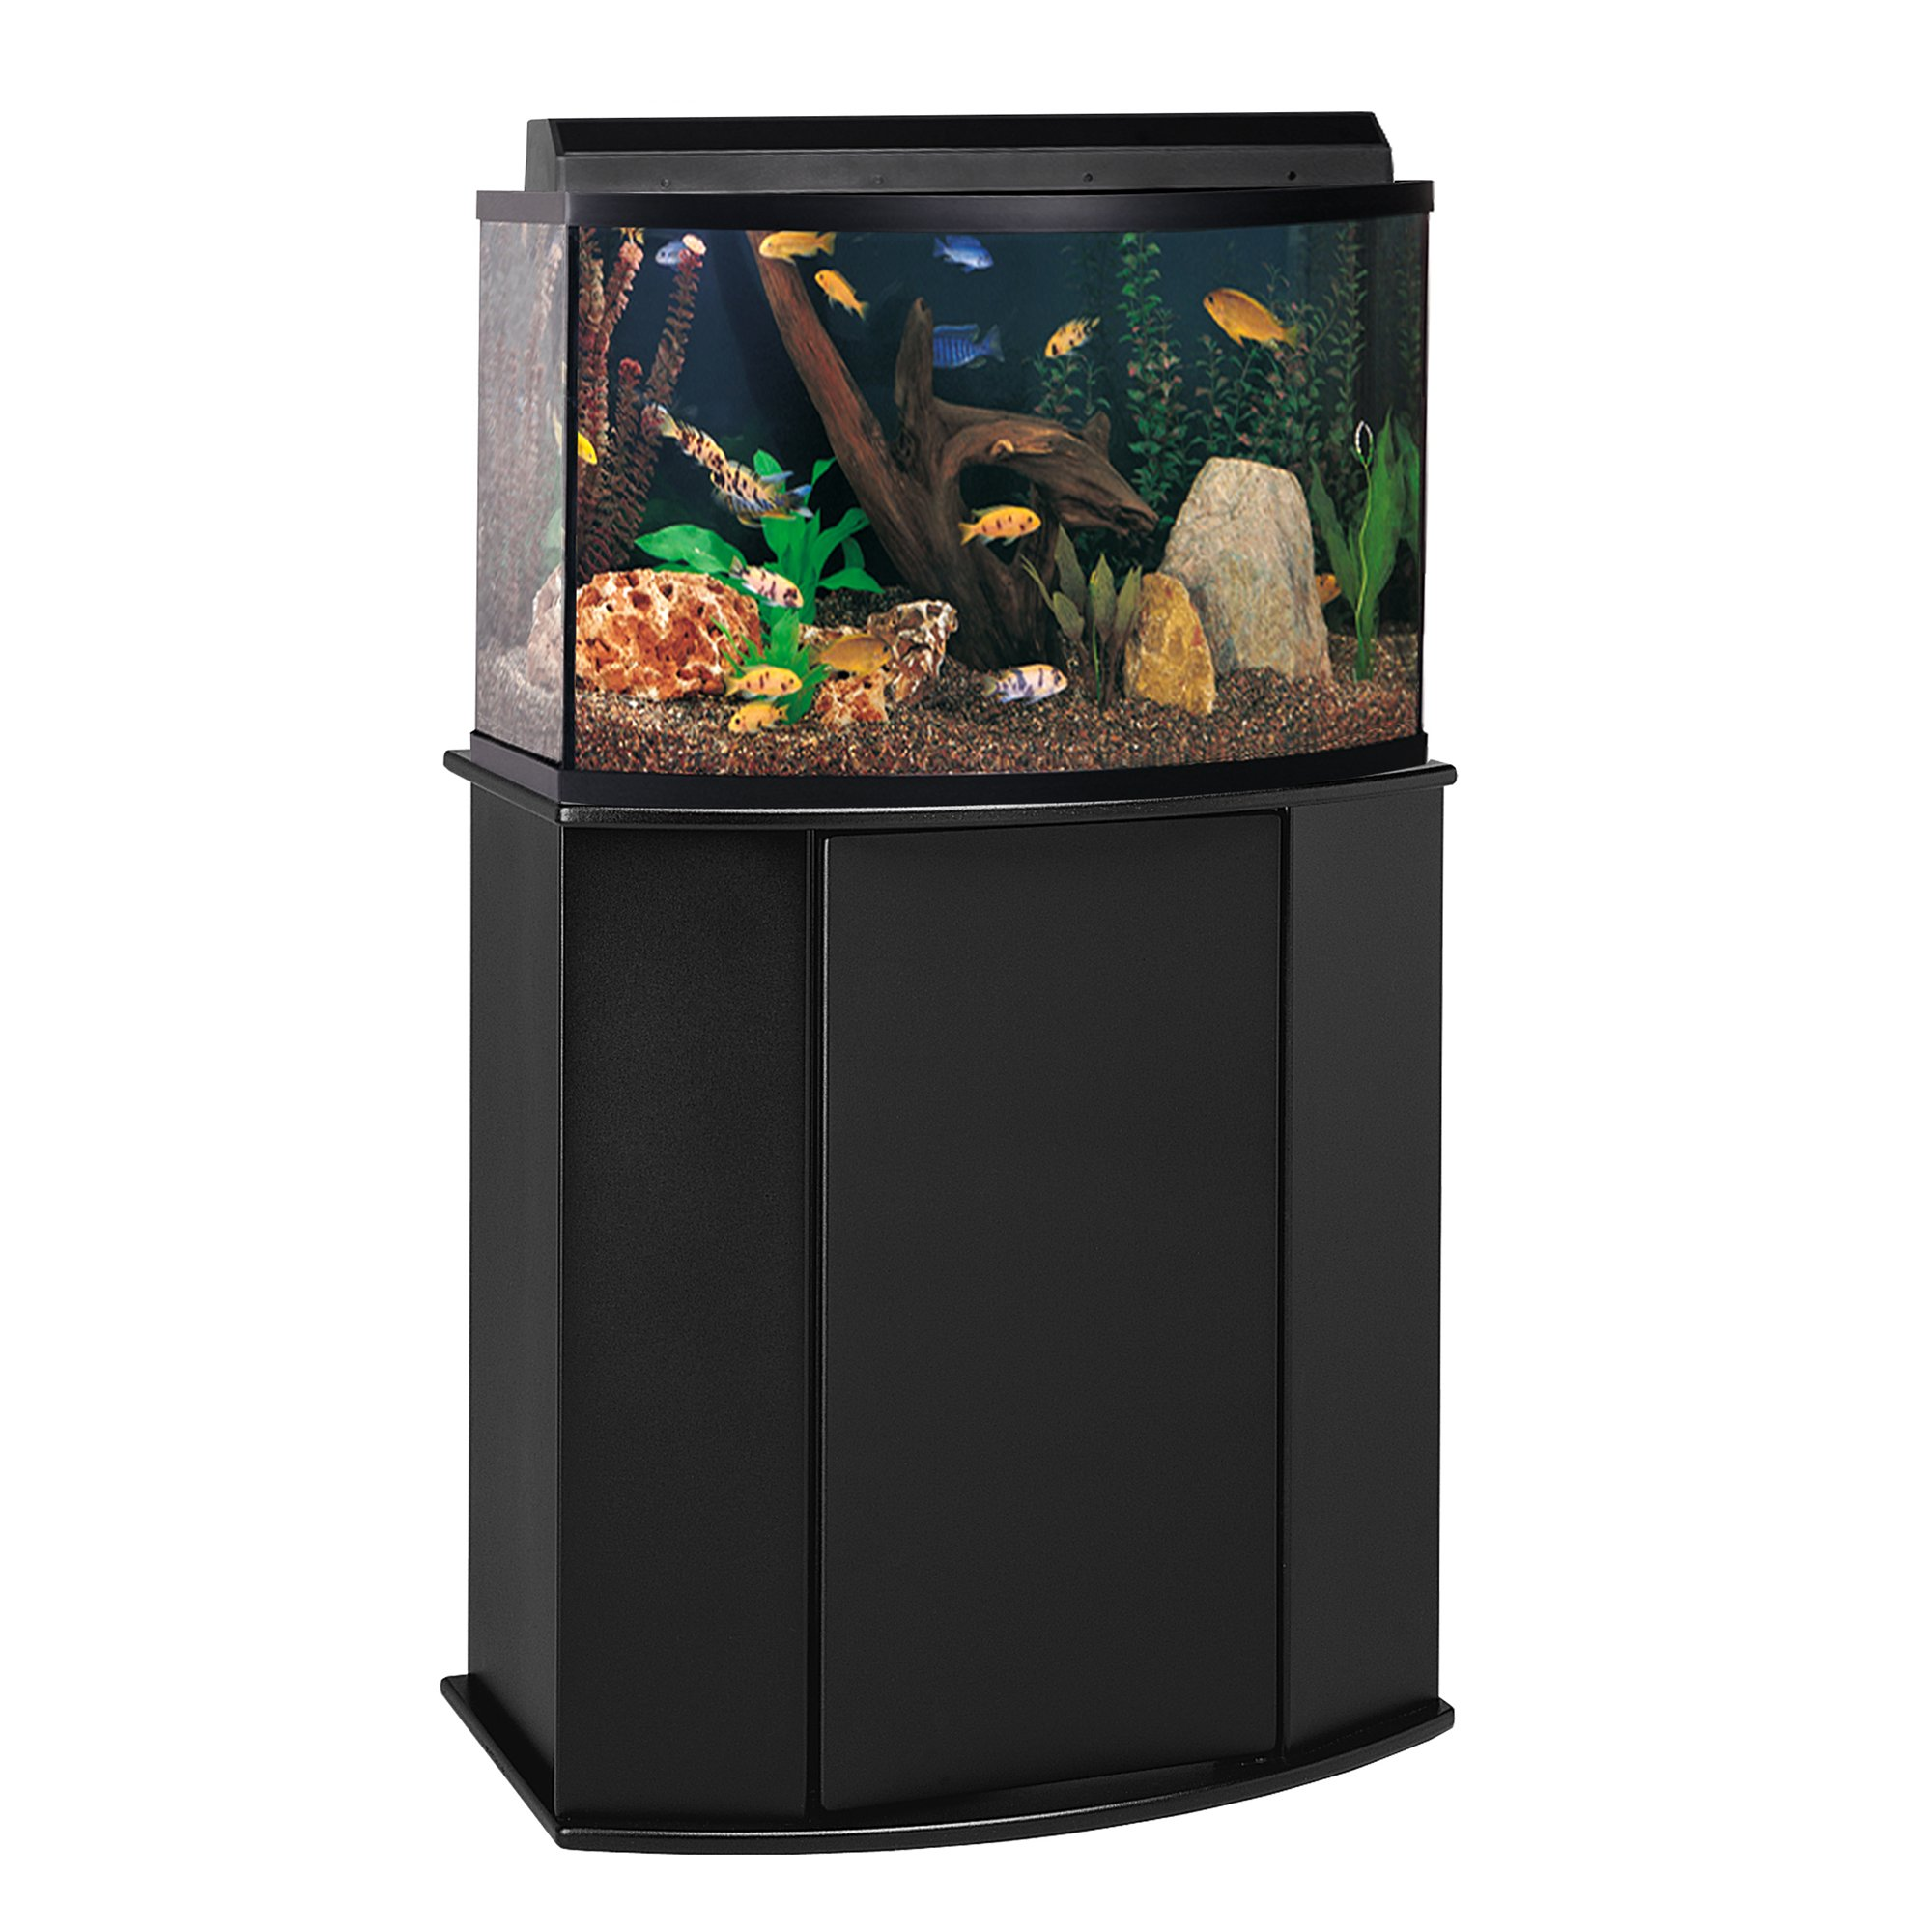 sc 1 st  Petco & Aquatic Fundamentals 26 Gallon Bowfront Aquarium Stand | Petco